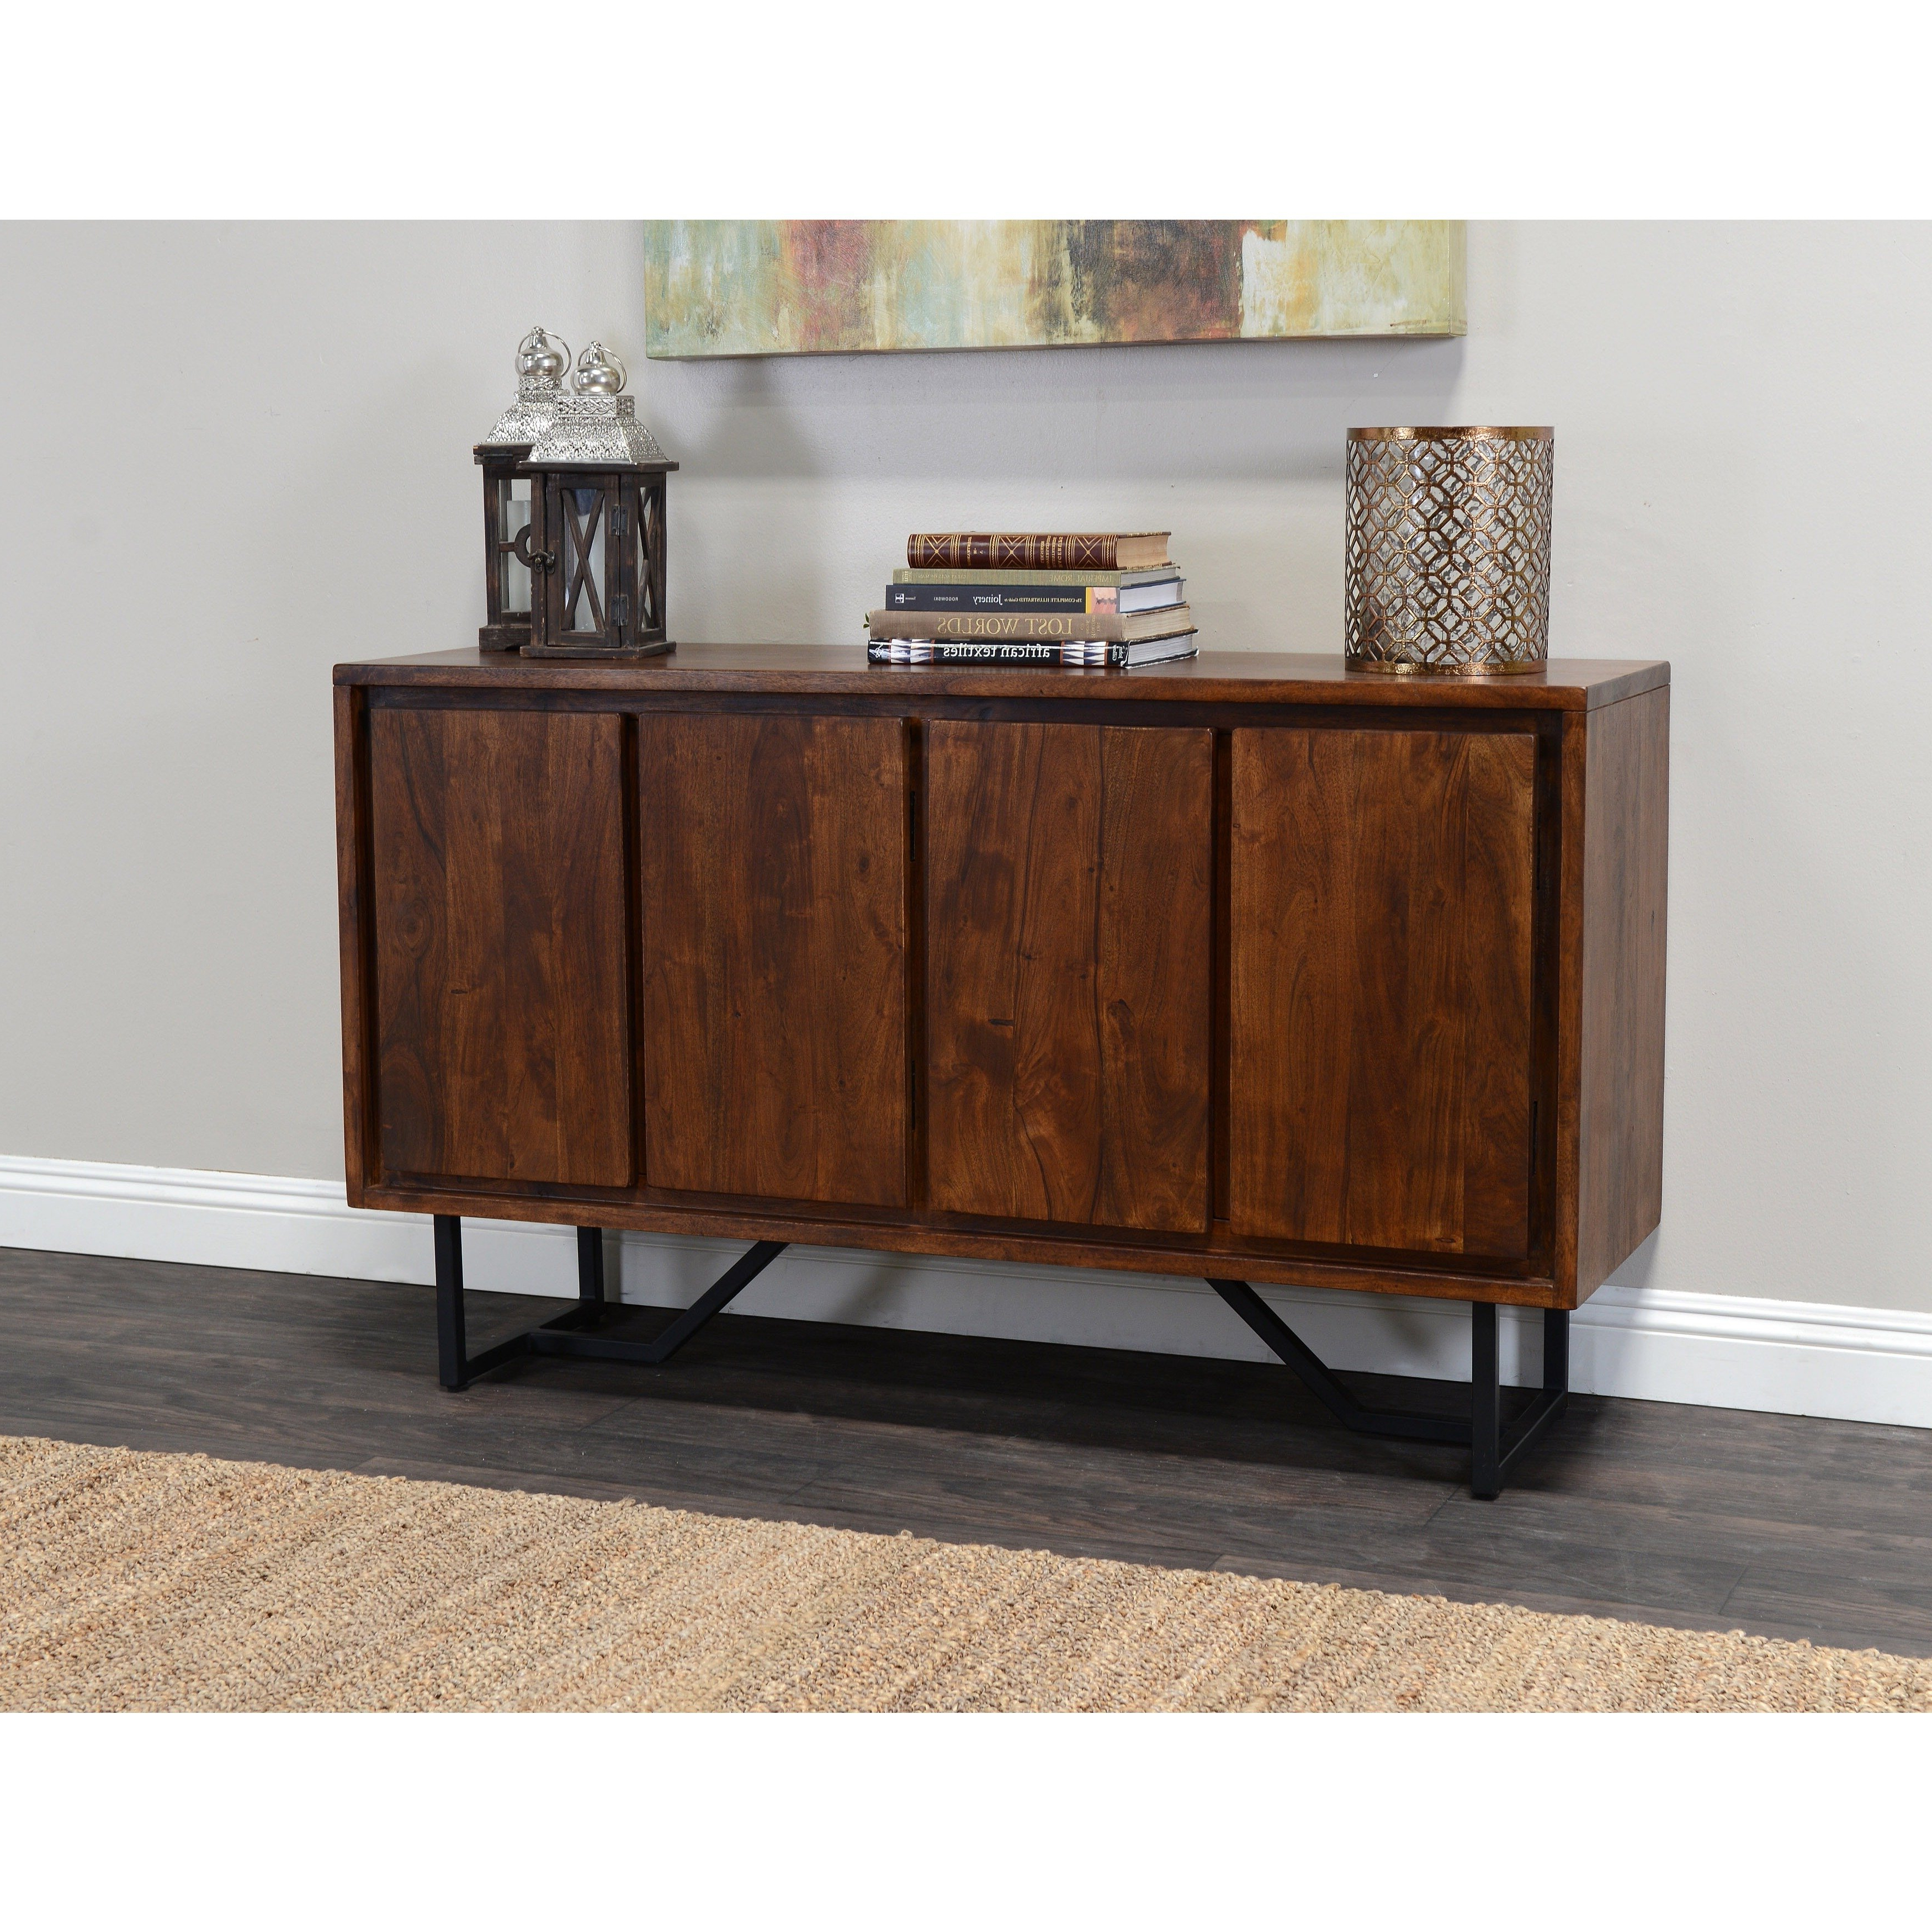 2018 Shop Kosas Home Wabby 4 Door Dark Walnut Sideboard – Free Shipping With Regard To Walnut Finish 4 Door Sideboards (Gallery 12 of 20)